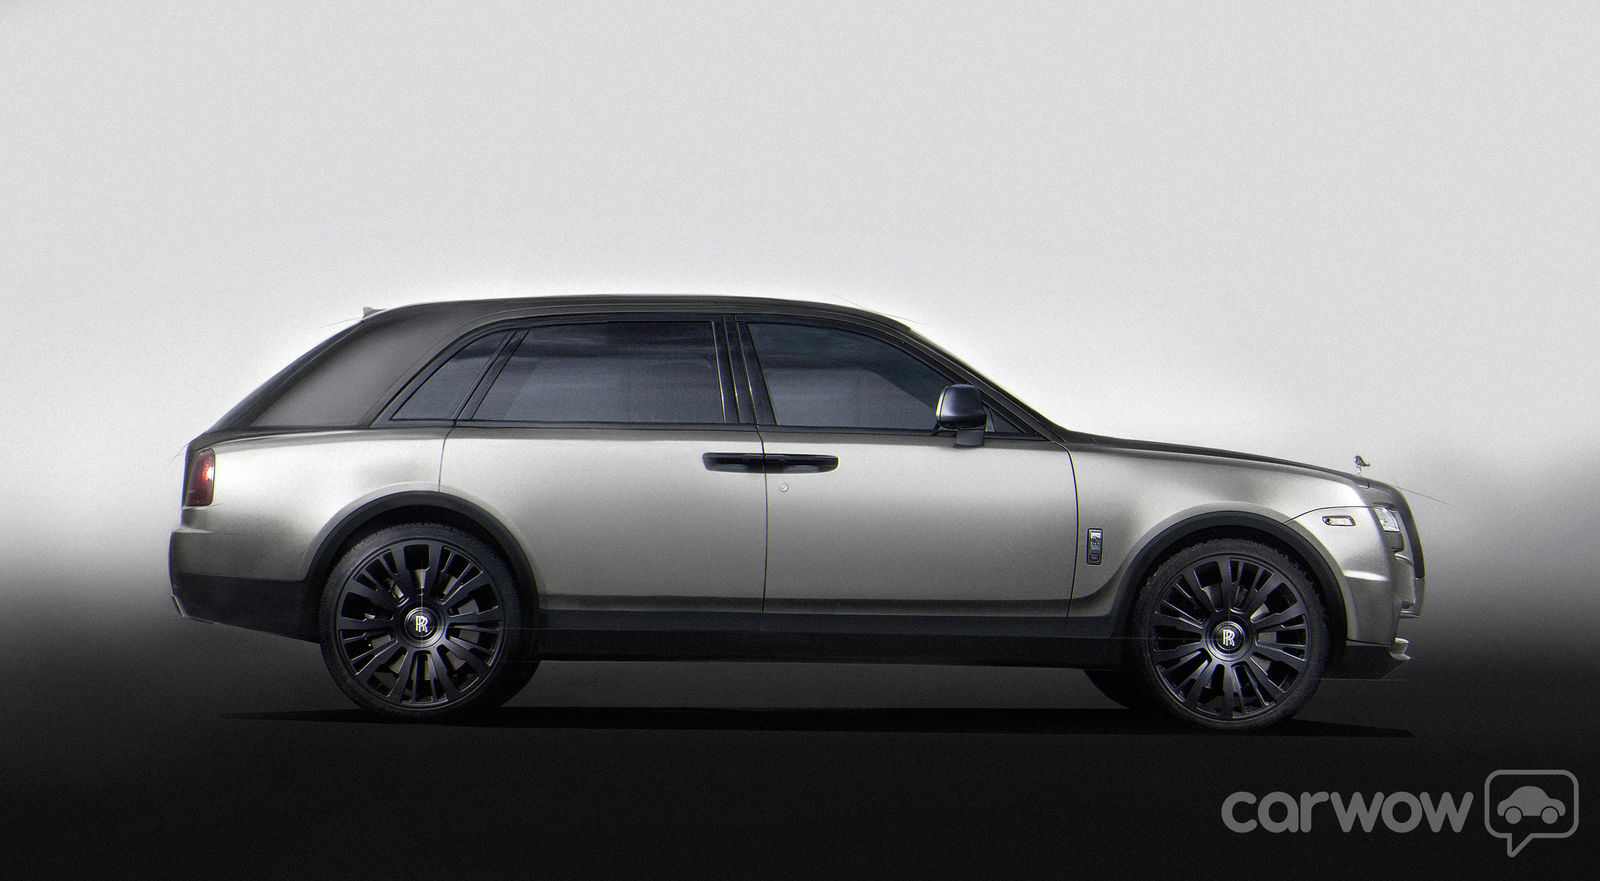 Rolls-Royce Cullinan SUV price, specs and release date | carwow